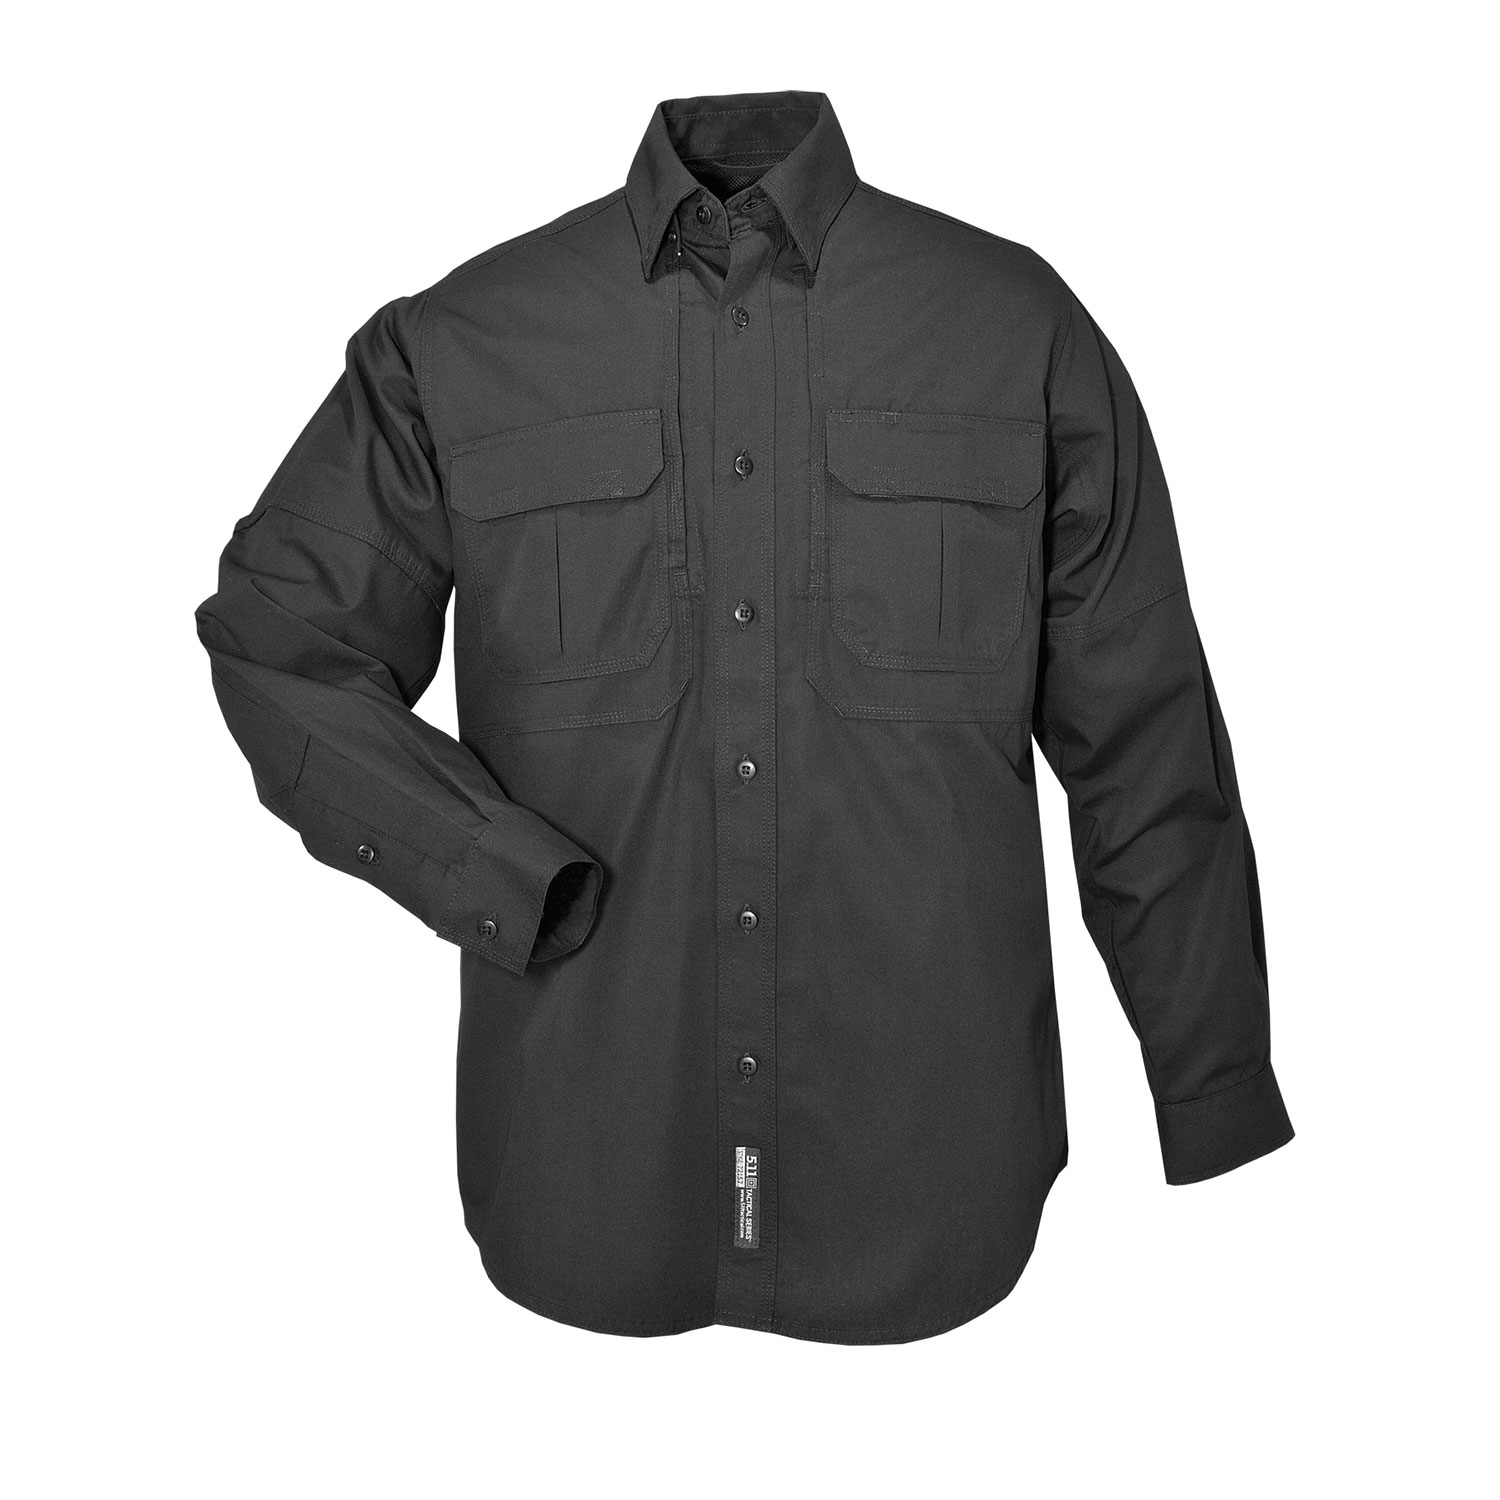 5.11 Tactical Cotton Canvas Long Sleeve Shirt